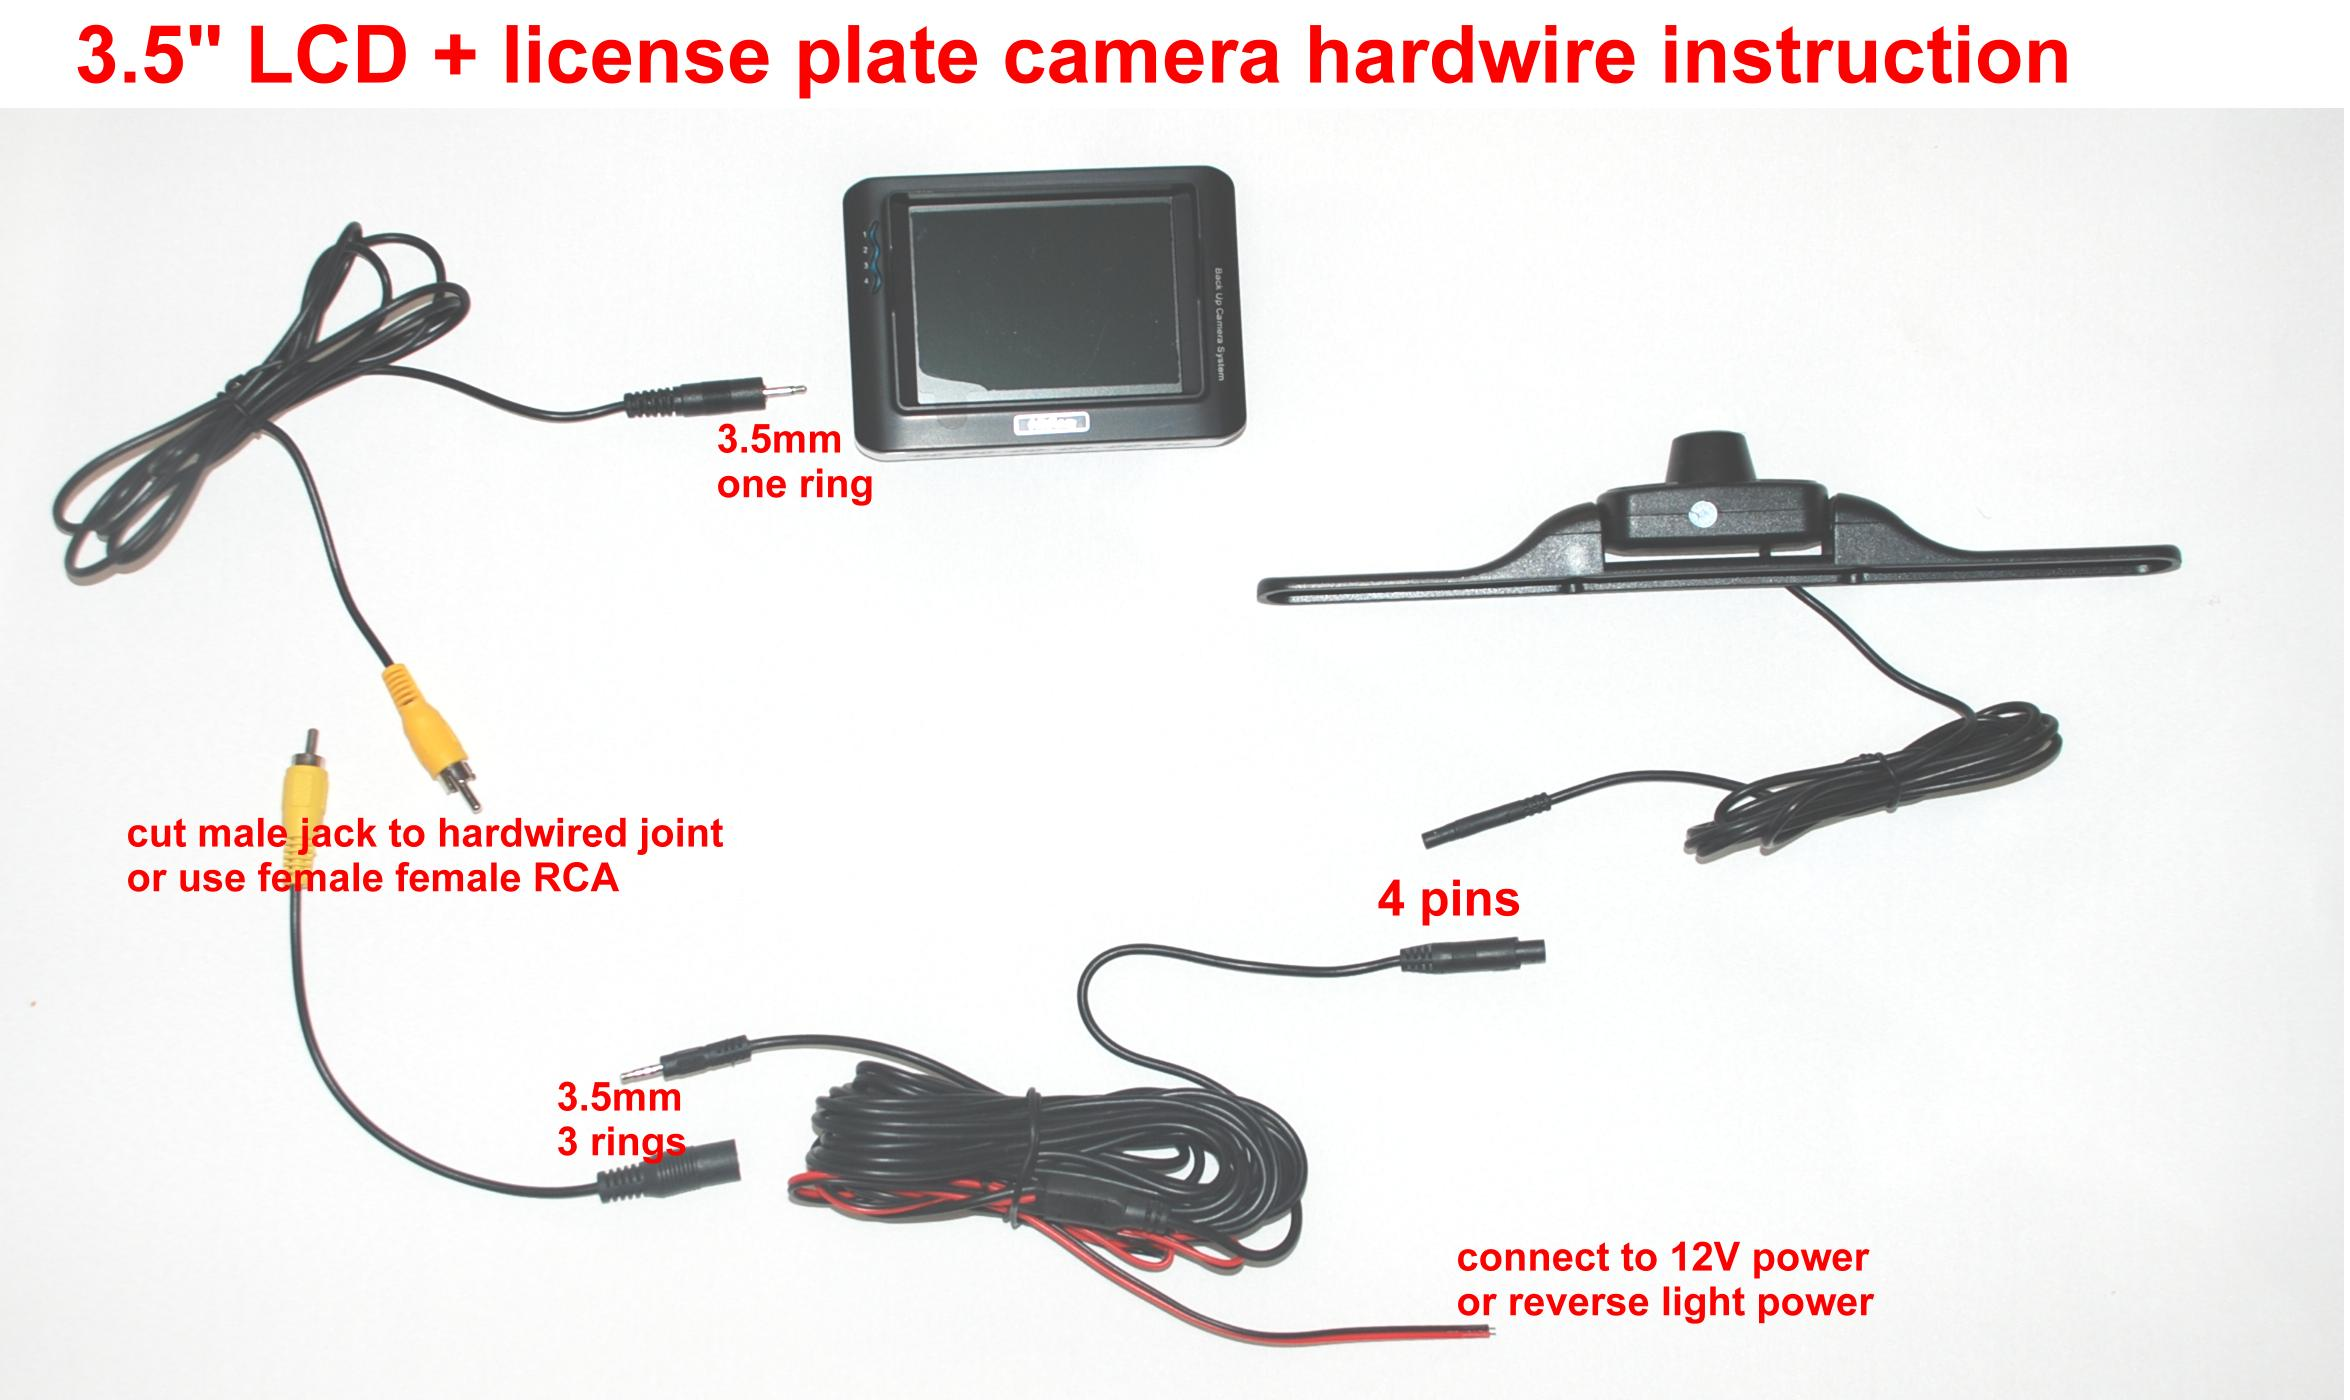 Wireless car backup camera 3.6 inch LCD Color Monitor and 2.4GHz Wireless  Camera - Day & Night